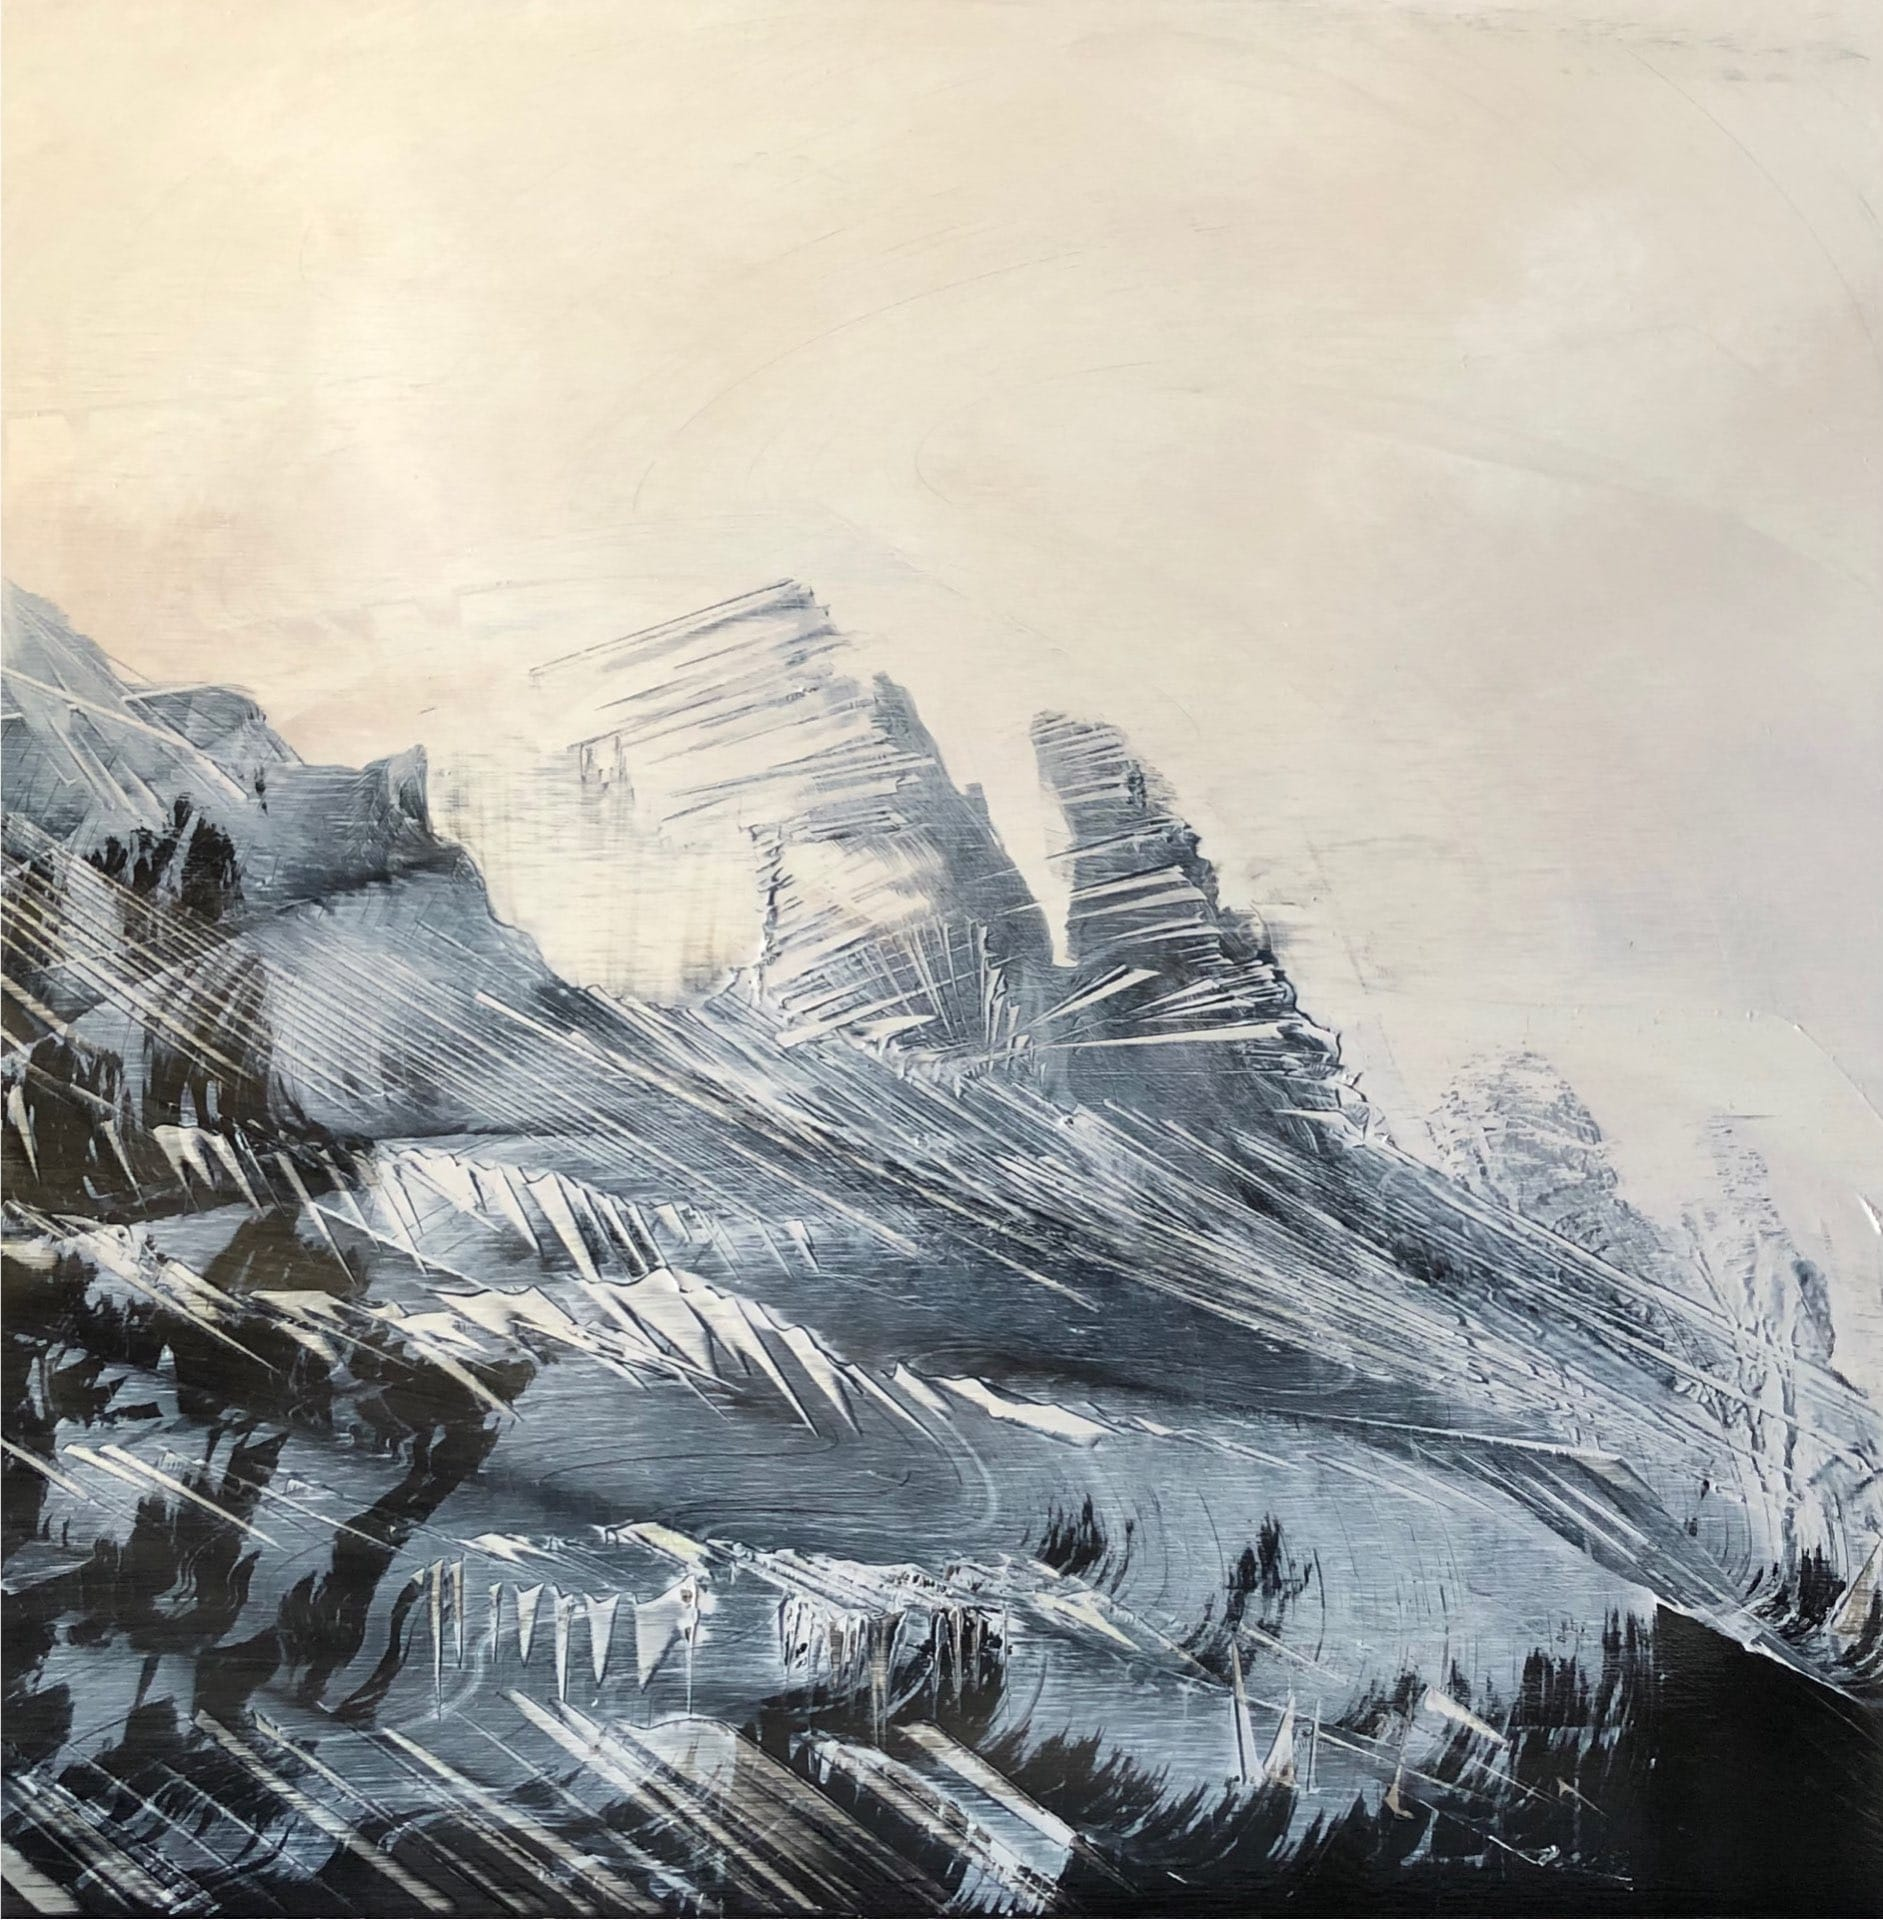 Misty Ridgeline, Contemporary oil painting on metal of mountains in mist and fog, Fine Art by Cynthia McLoughlin